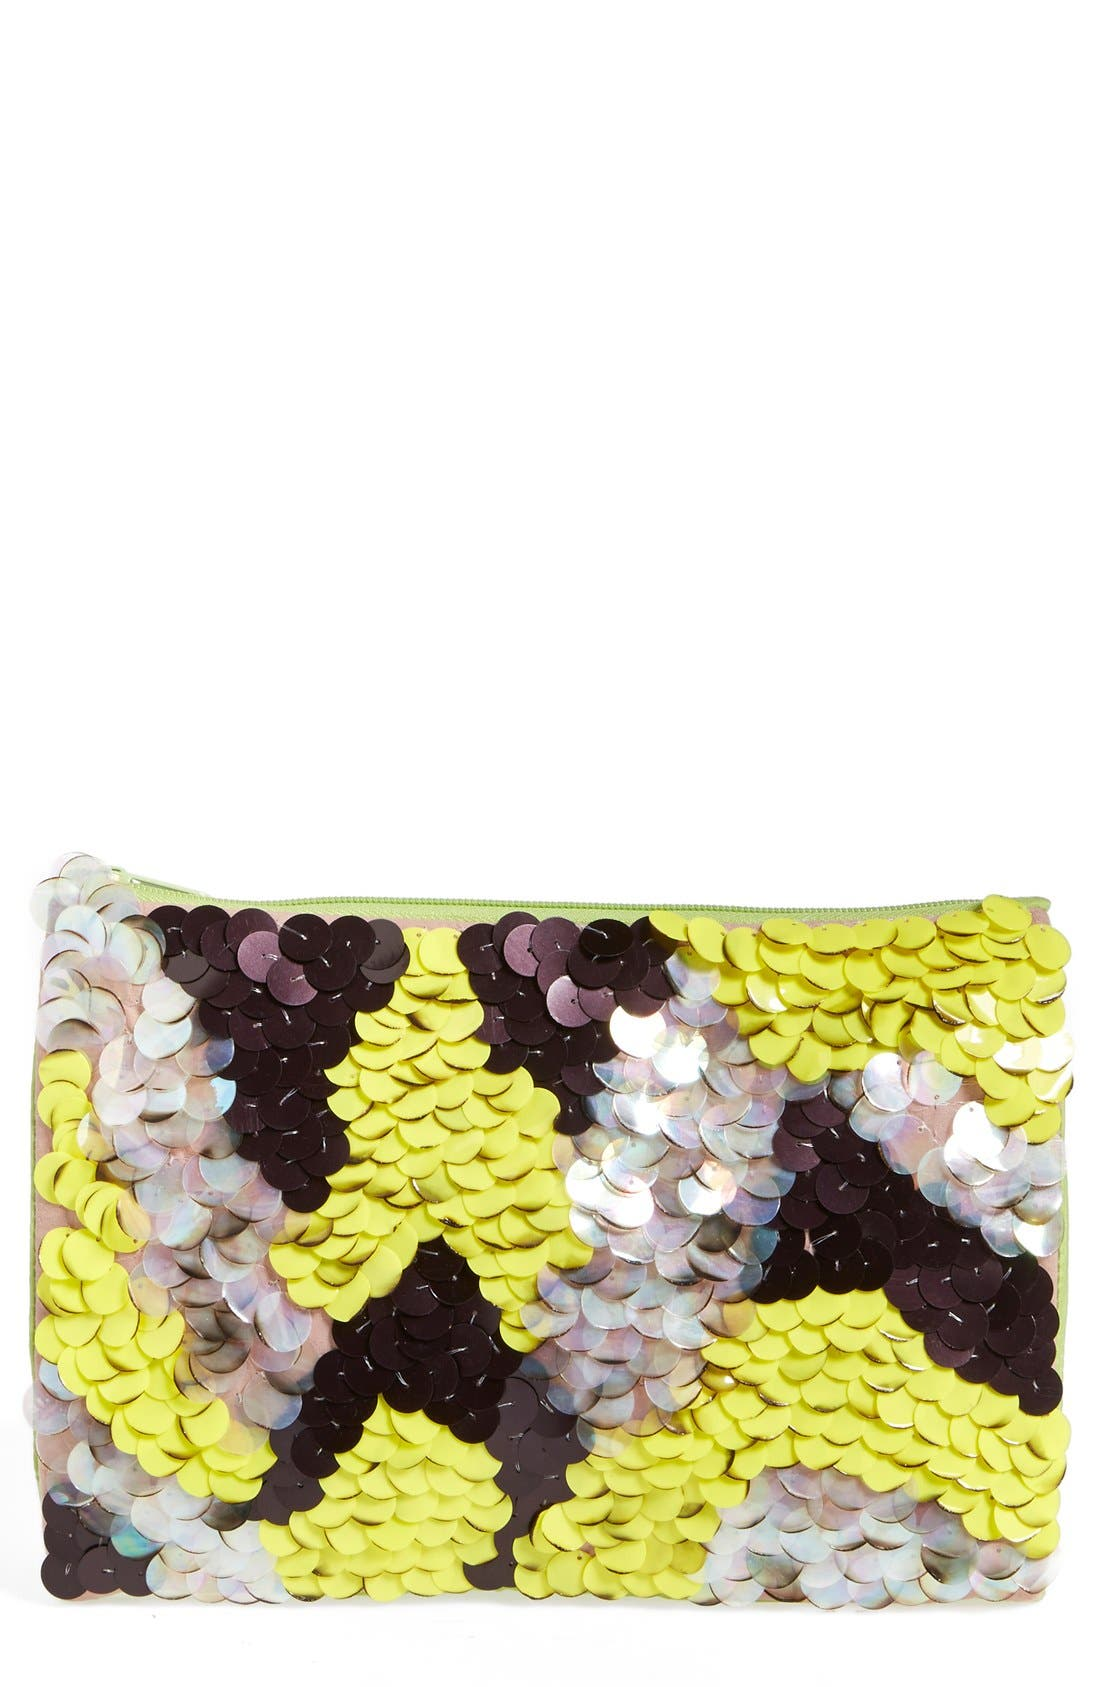 Alternate Image 1 Selected - Berry Ombré Sequin Clutch